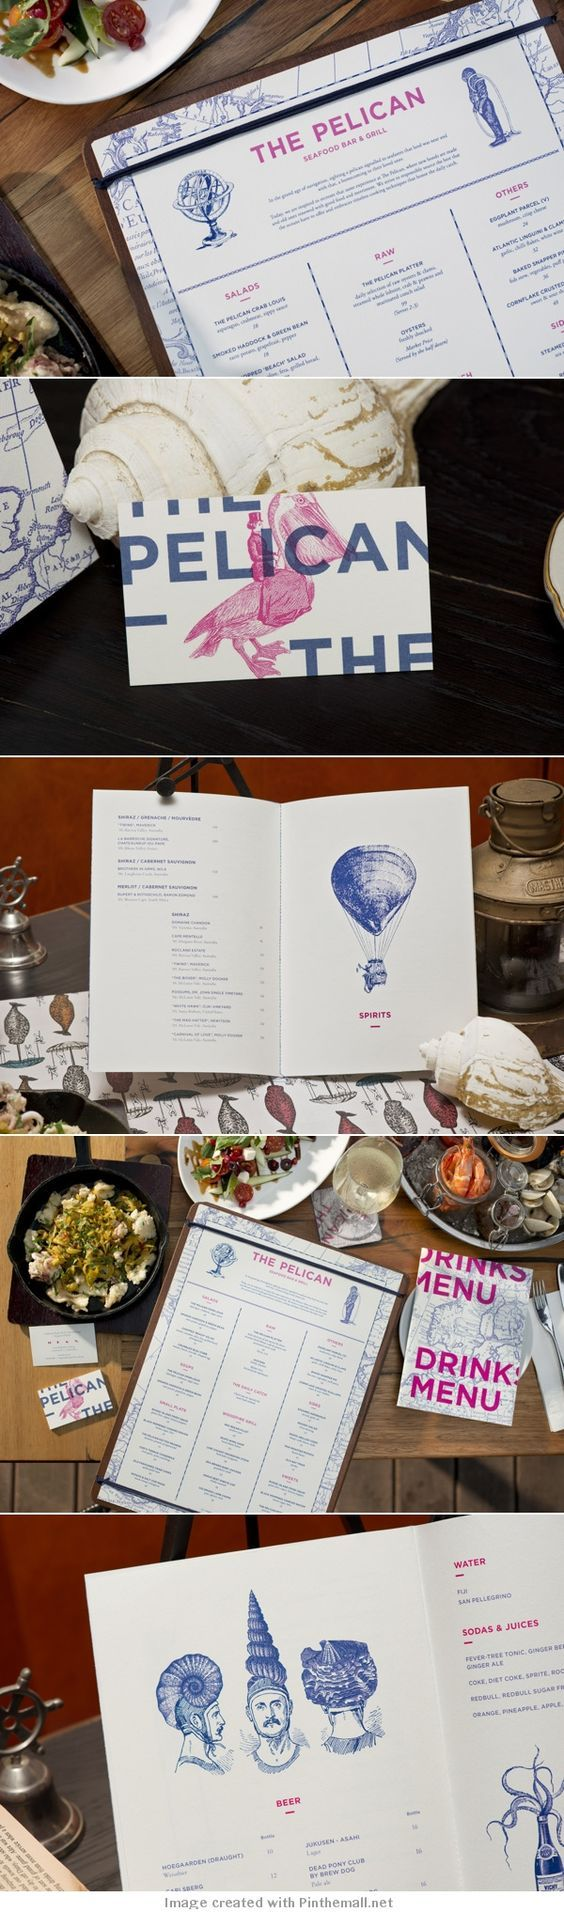 The Pelican Restaurant Branding by Foreign Policy | Fivestar Branding – Design and Branding Agency & Inspiration Gallery